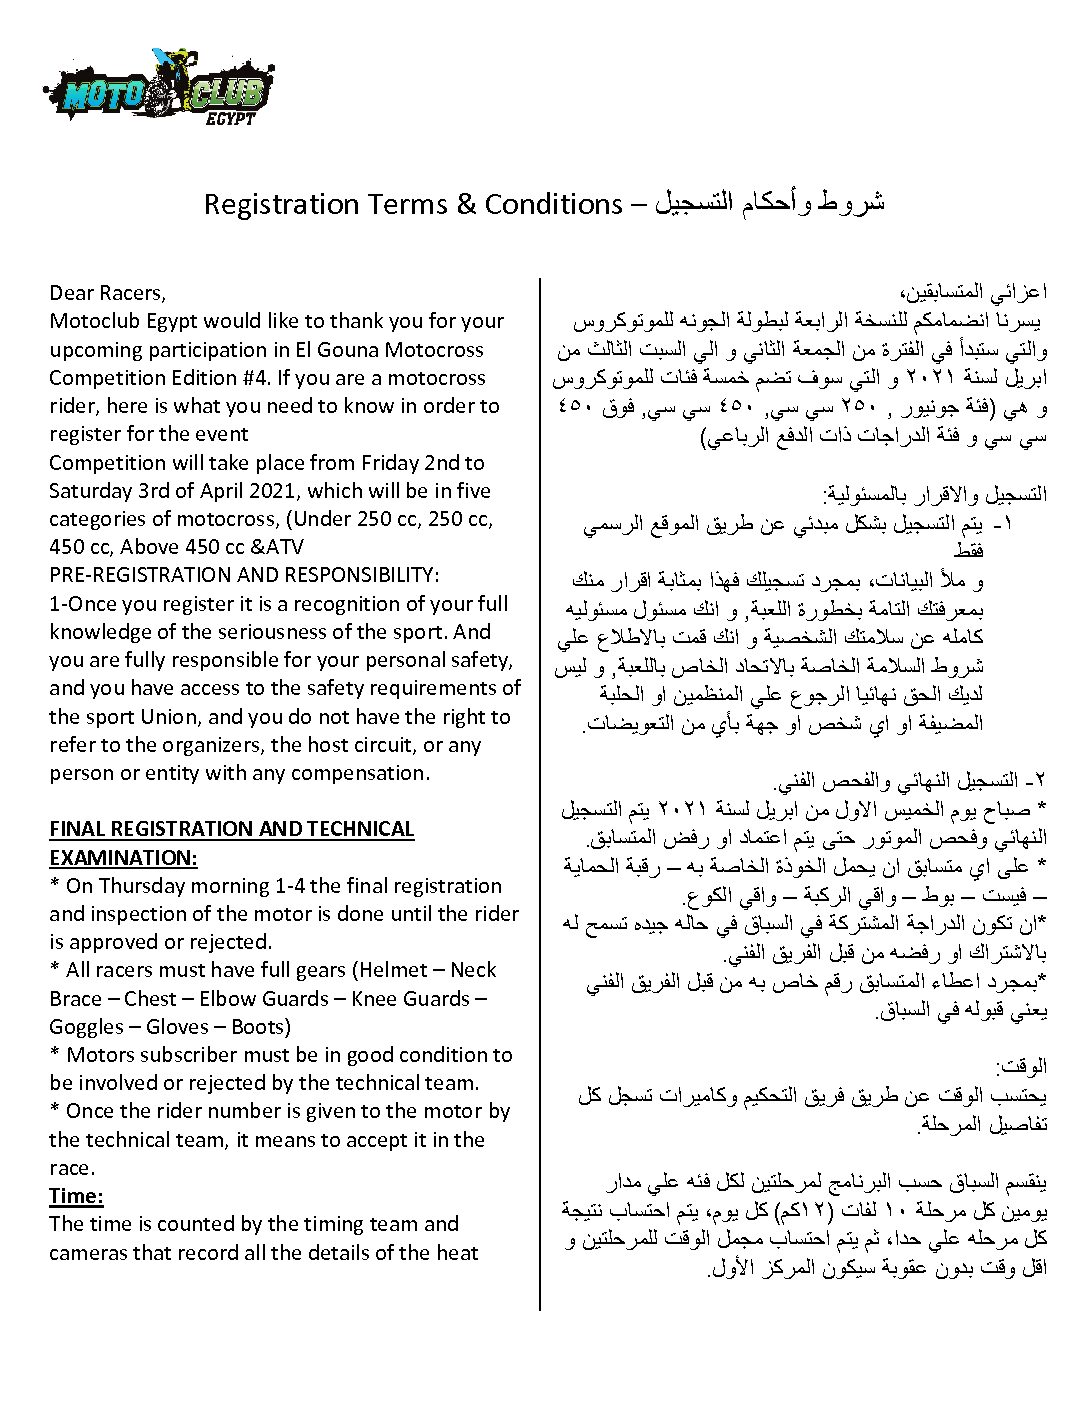 Registration Terms & Conditions_2021